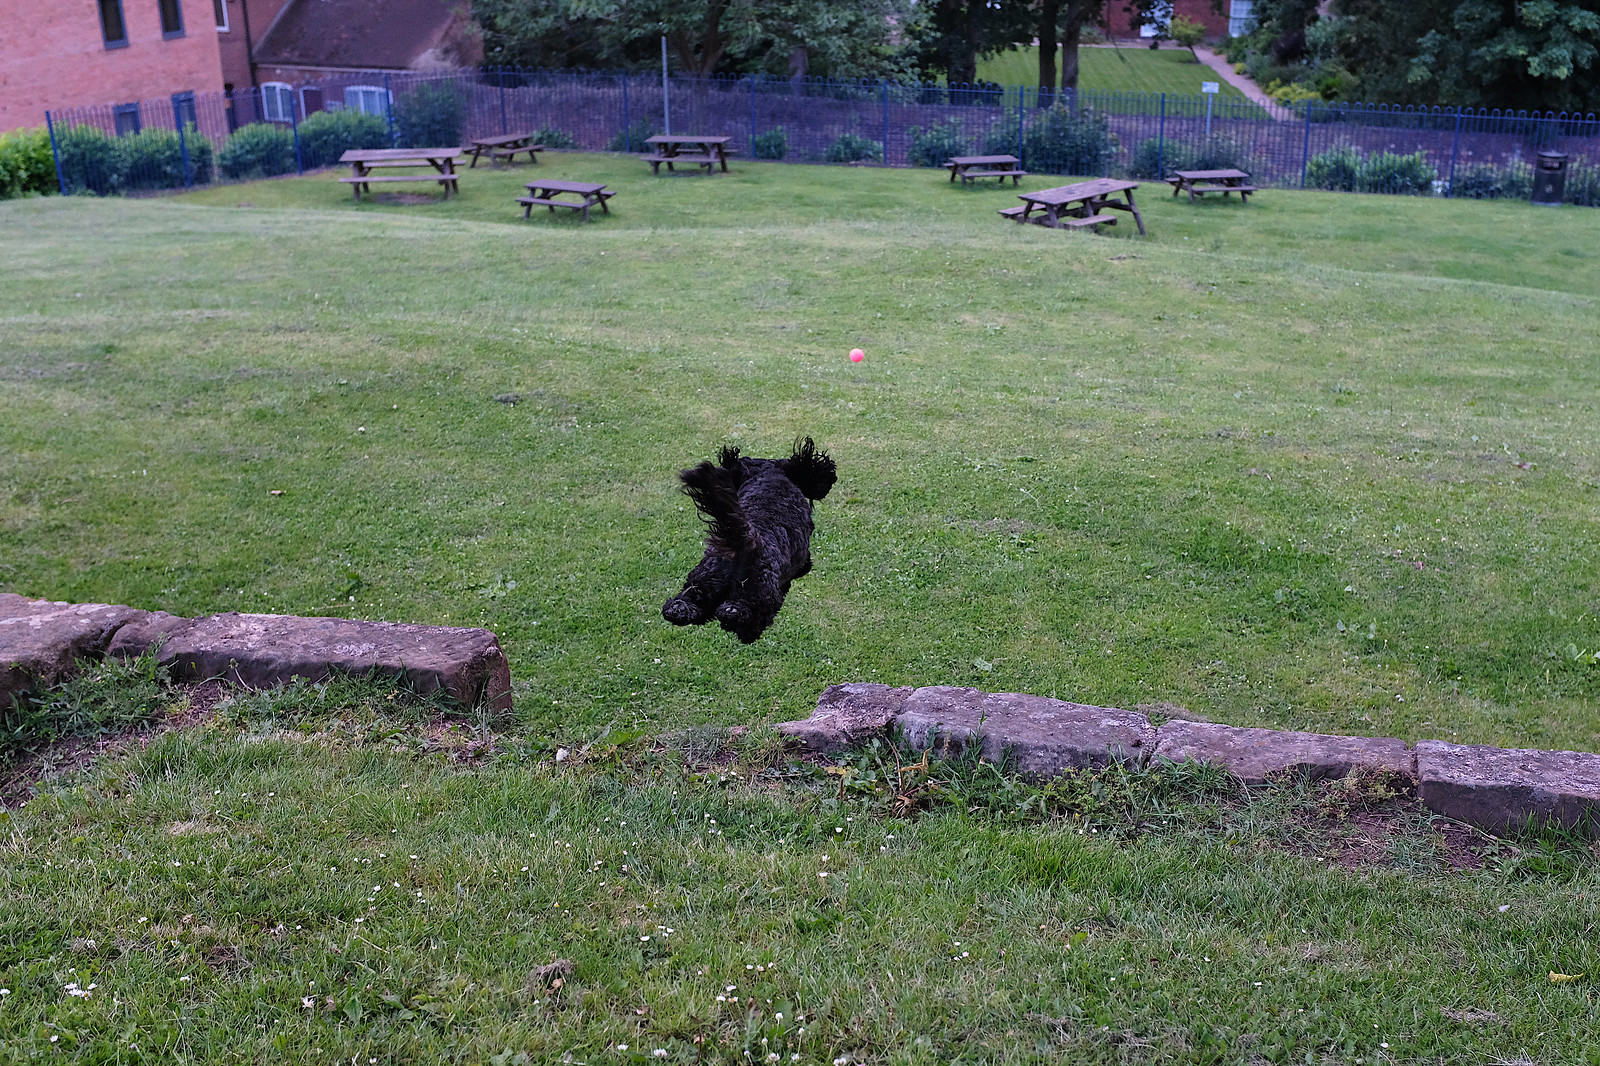 Black cockapoo chasing a ball